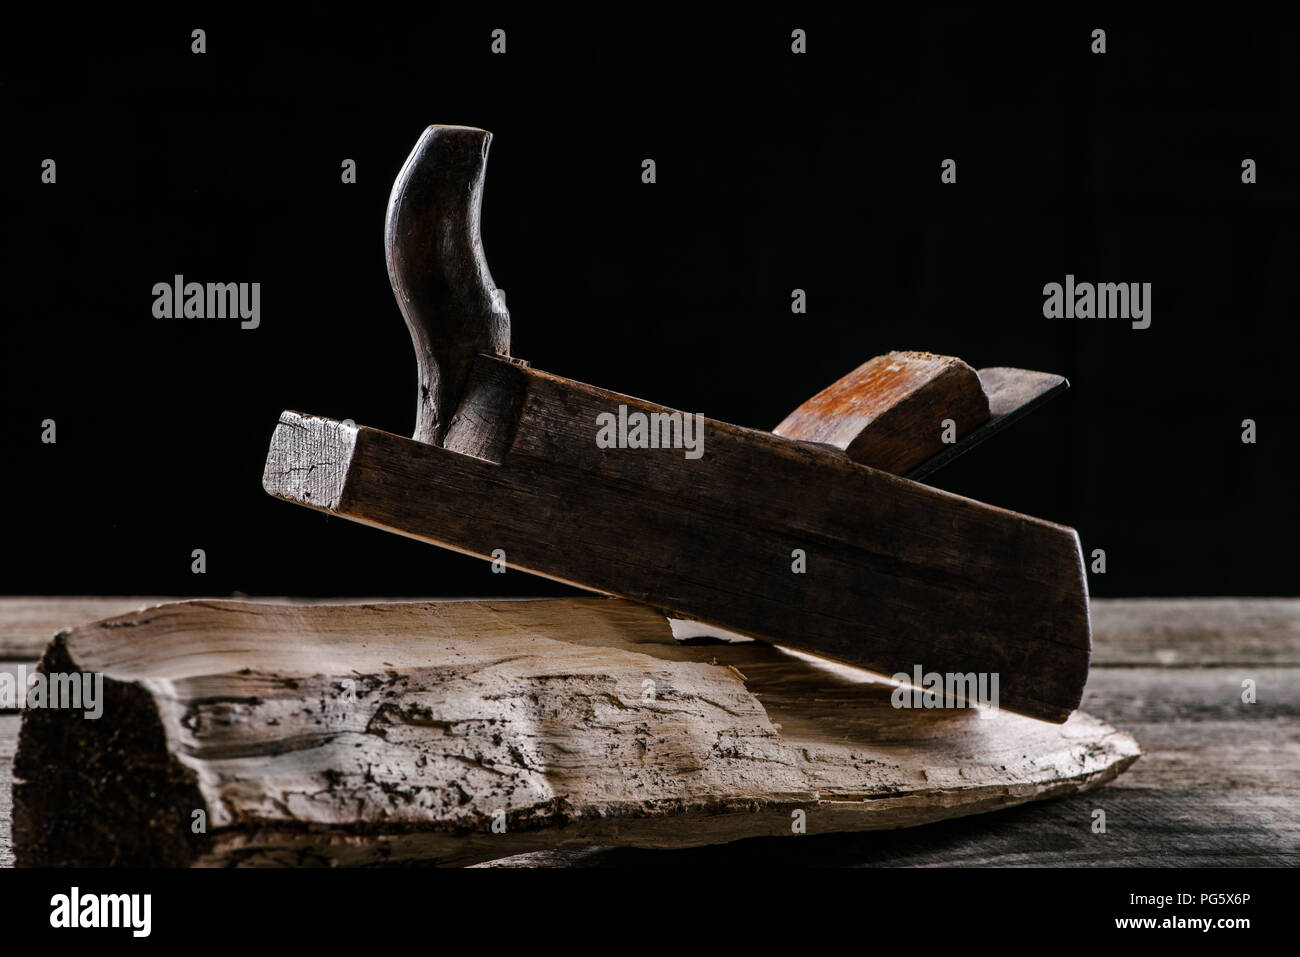 close up view of vintage woodworker plane and stump isolated on black - Stock Image